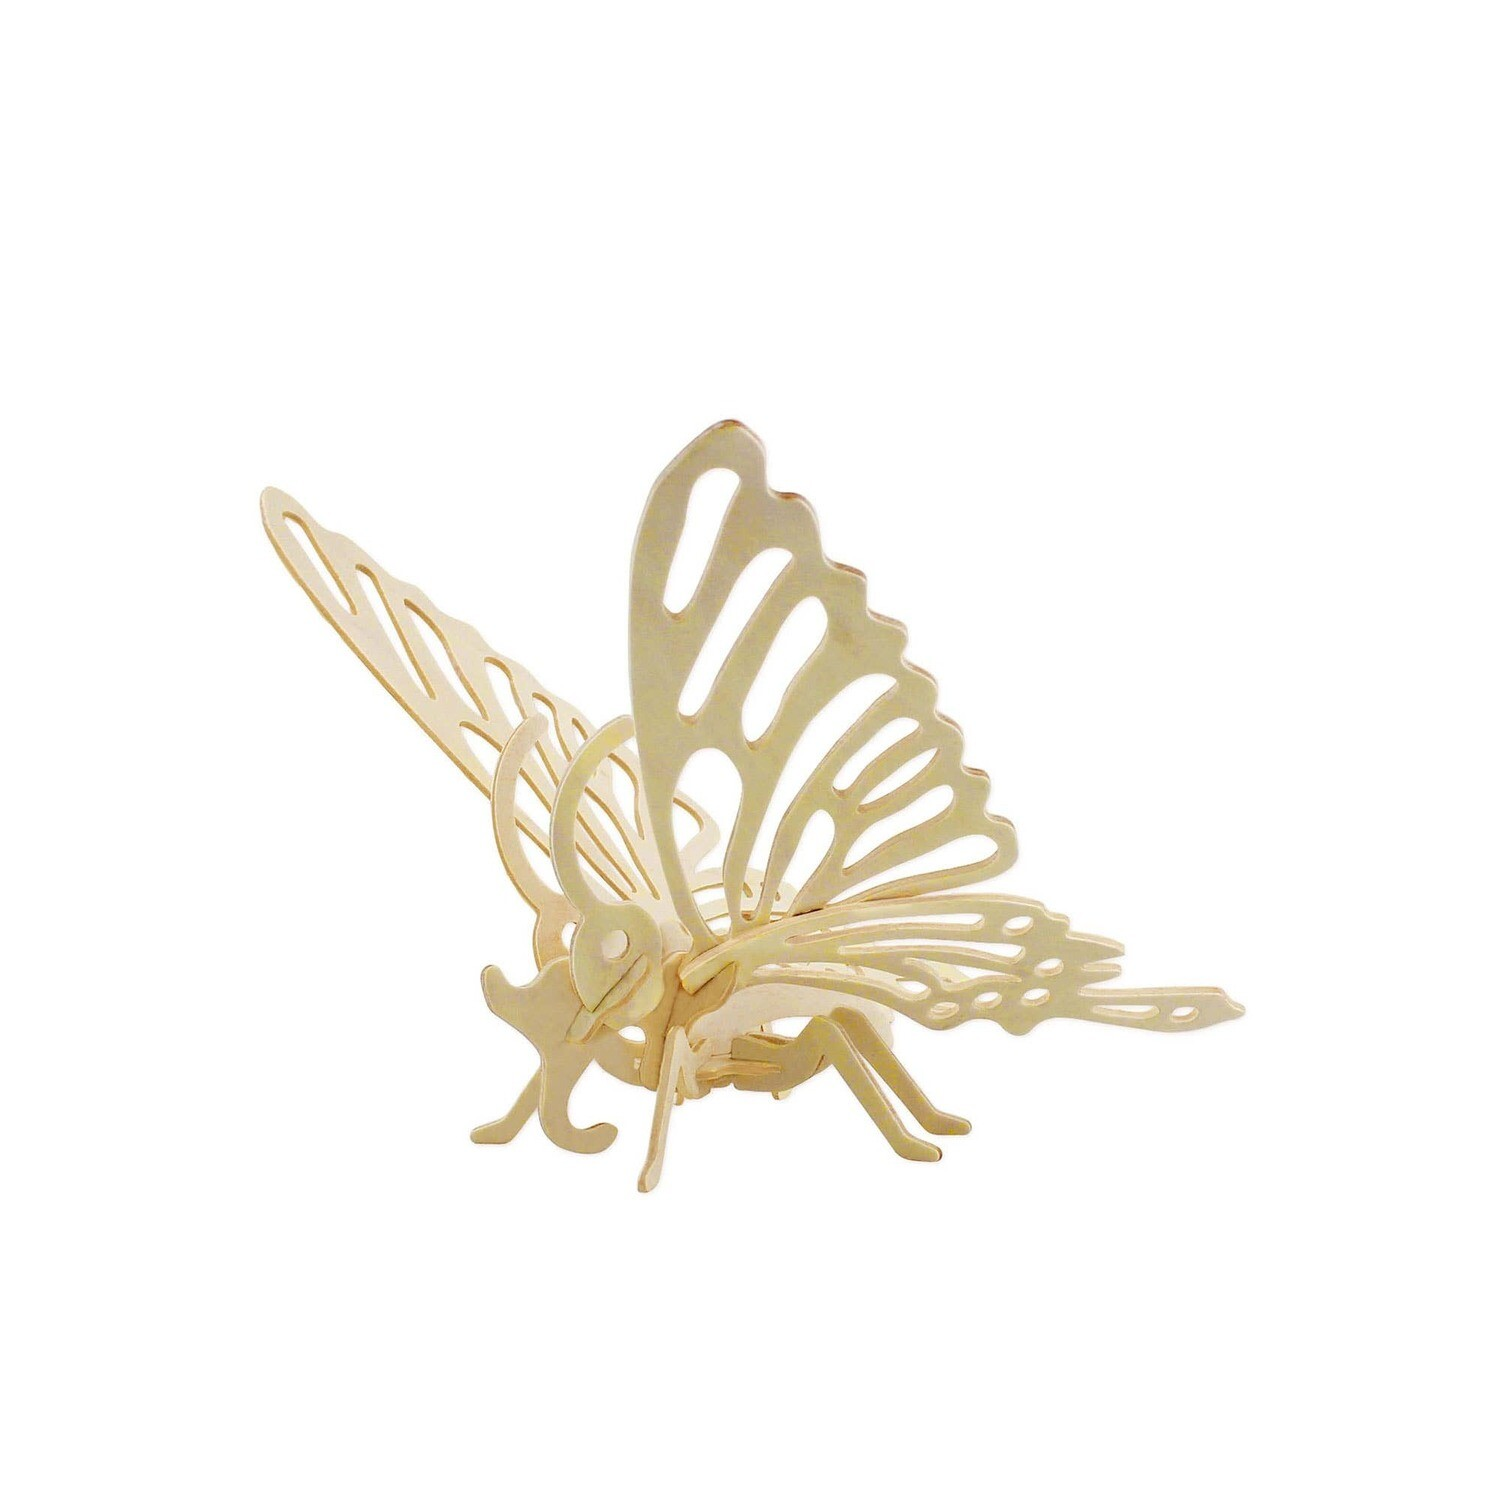 3D Wooden Puzzle: Butterfly